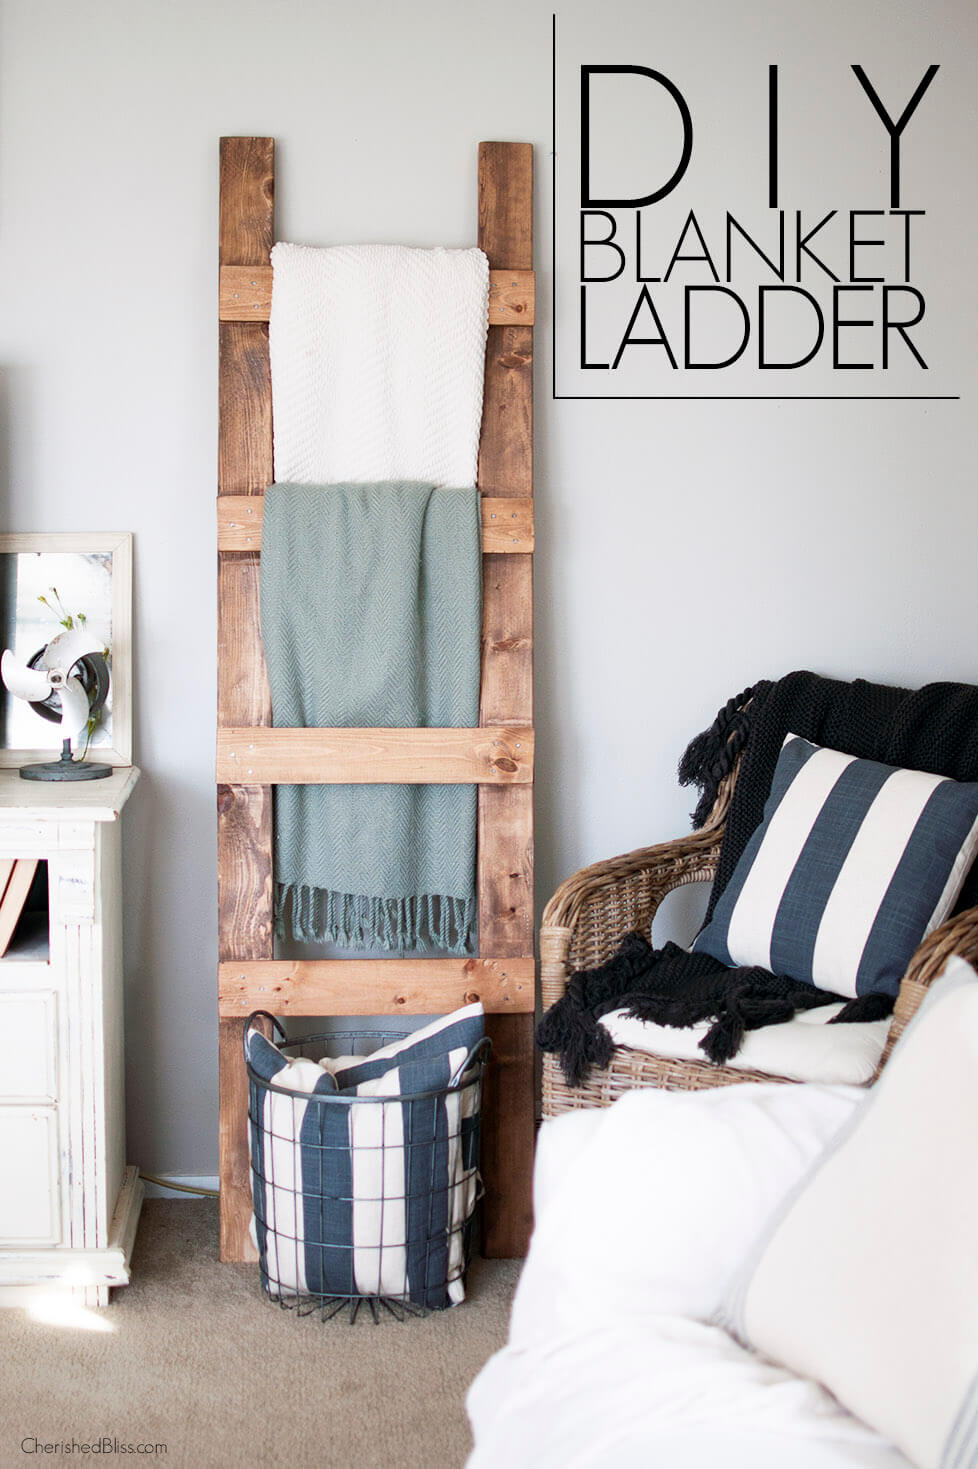 diy living room wall decor how to clean up the fast 45 best decorating ideas and designs for 2019 with ladders